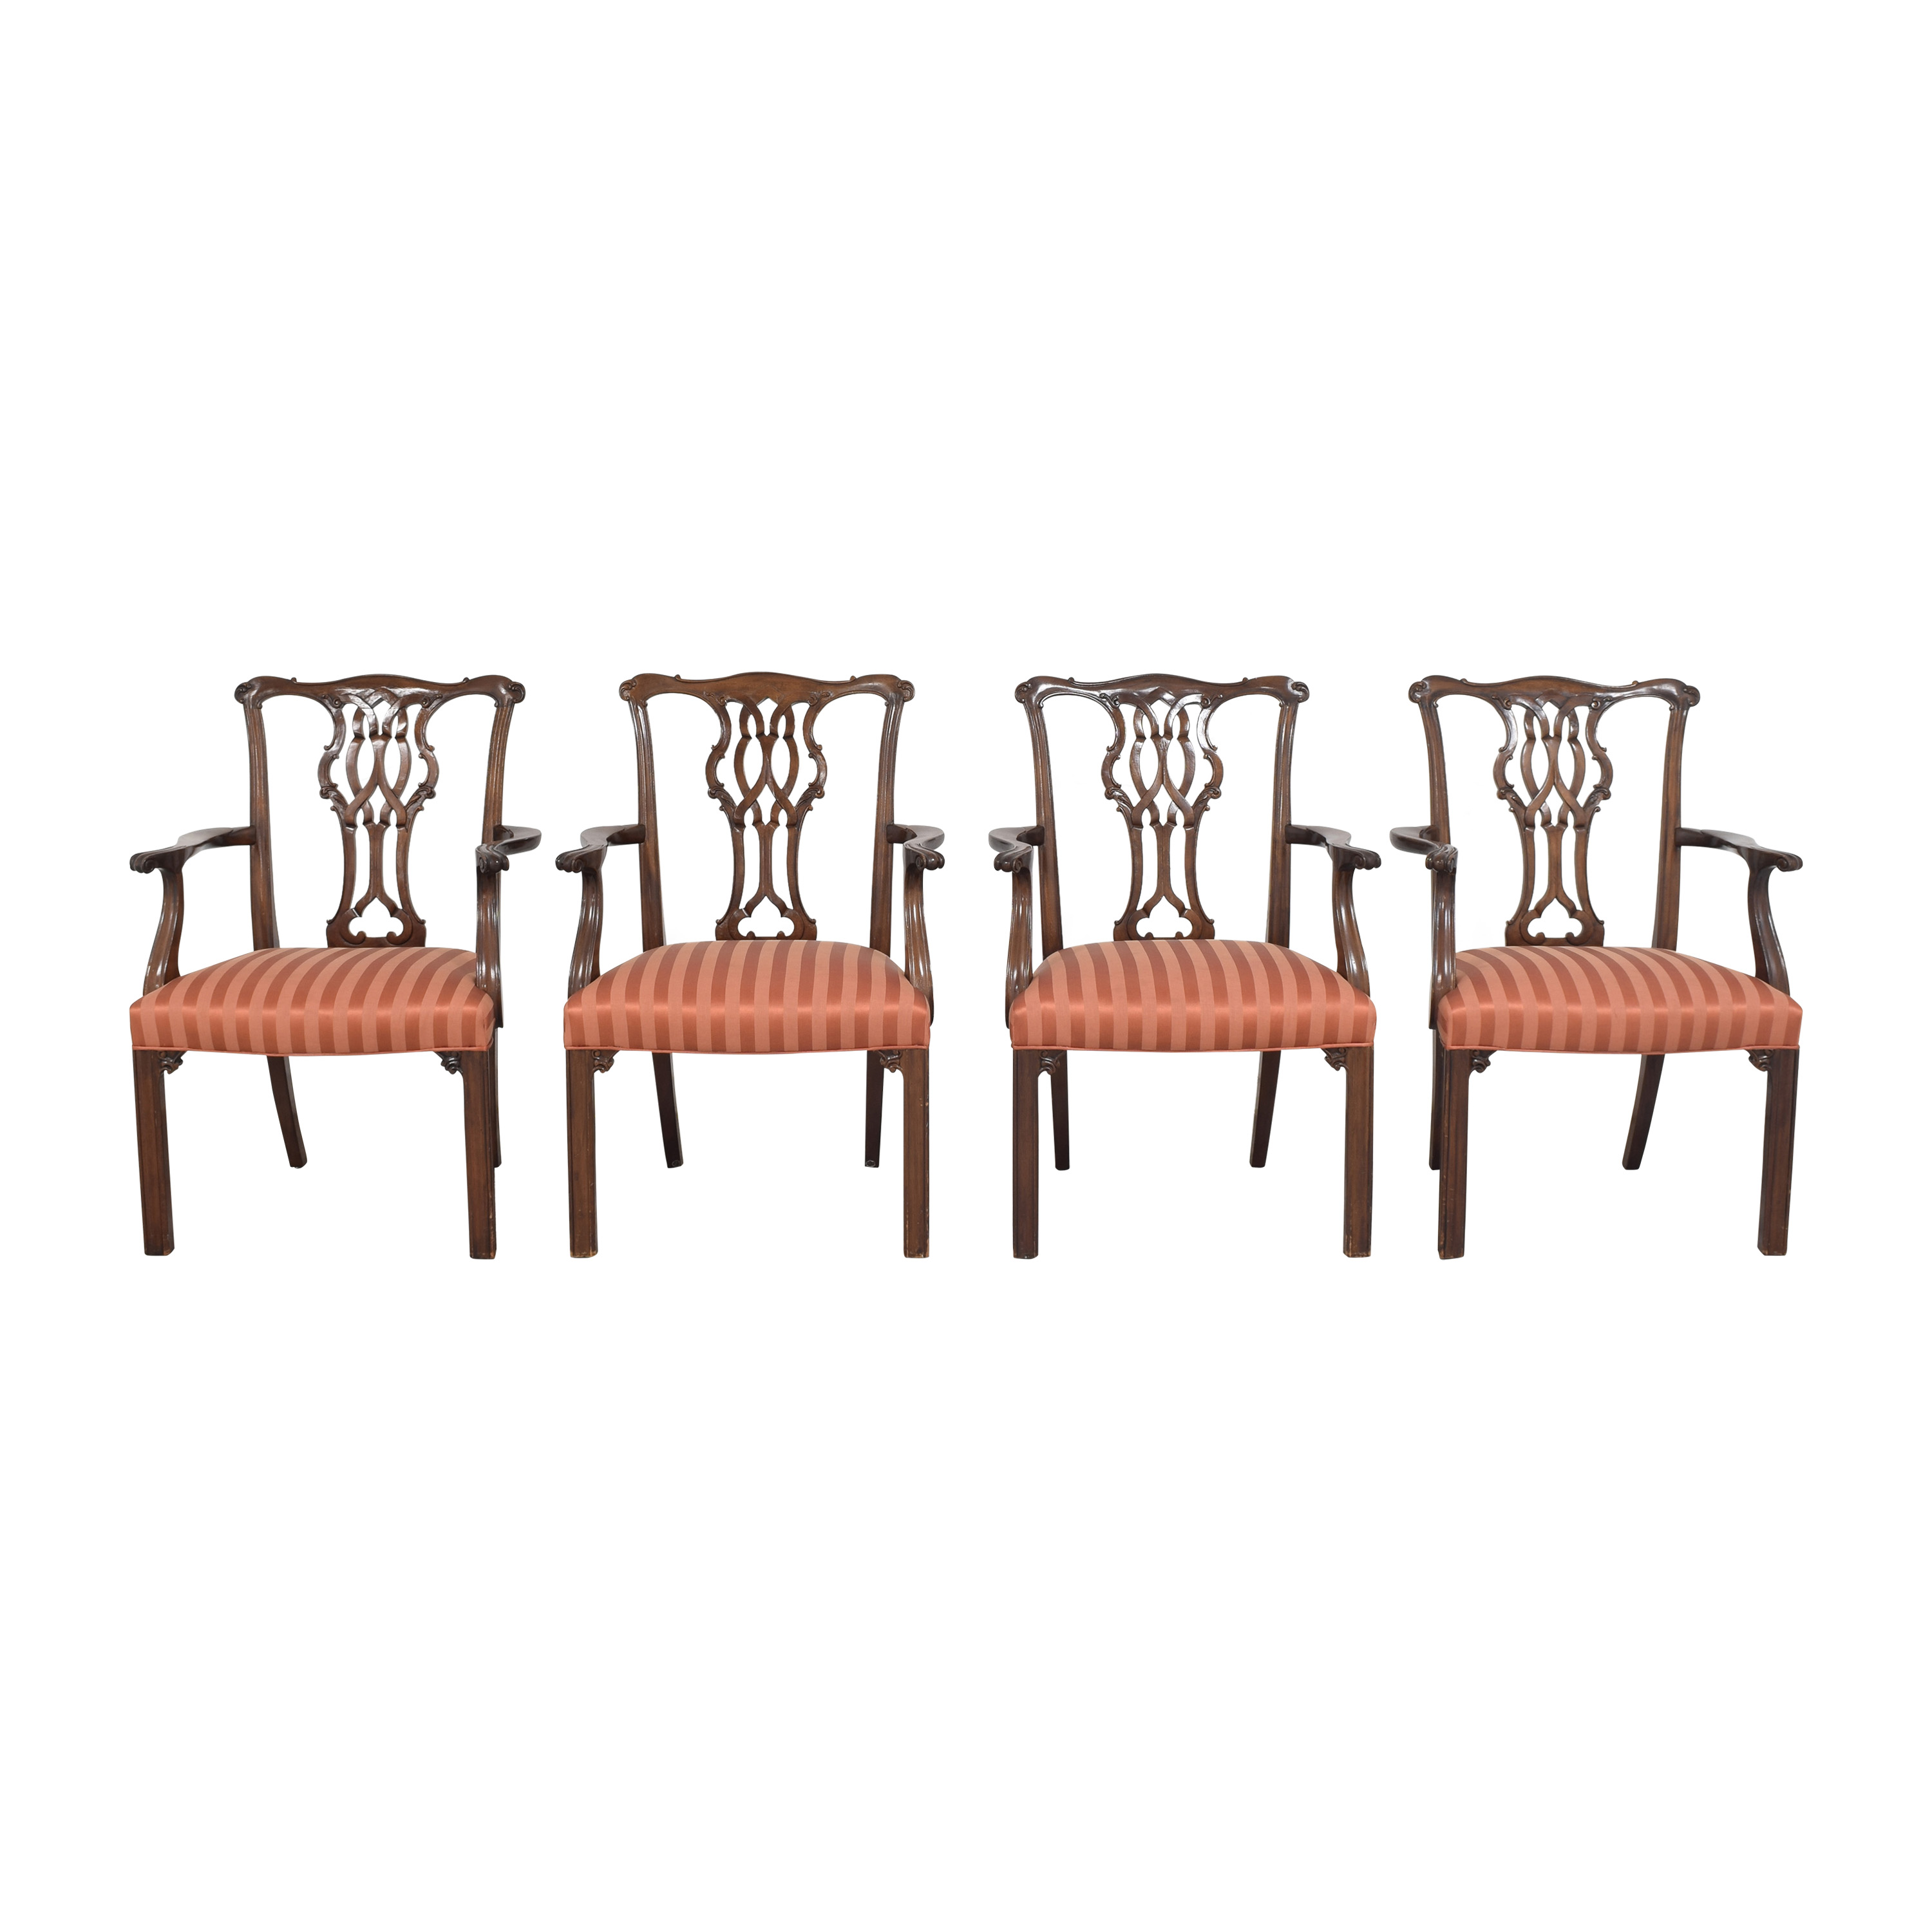 Baker Furniture Baker Furniture Chippendale Dining Chairs price